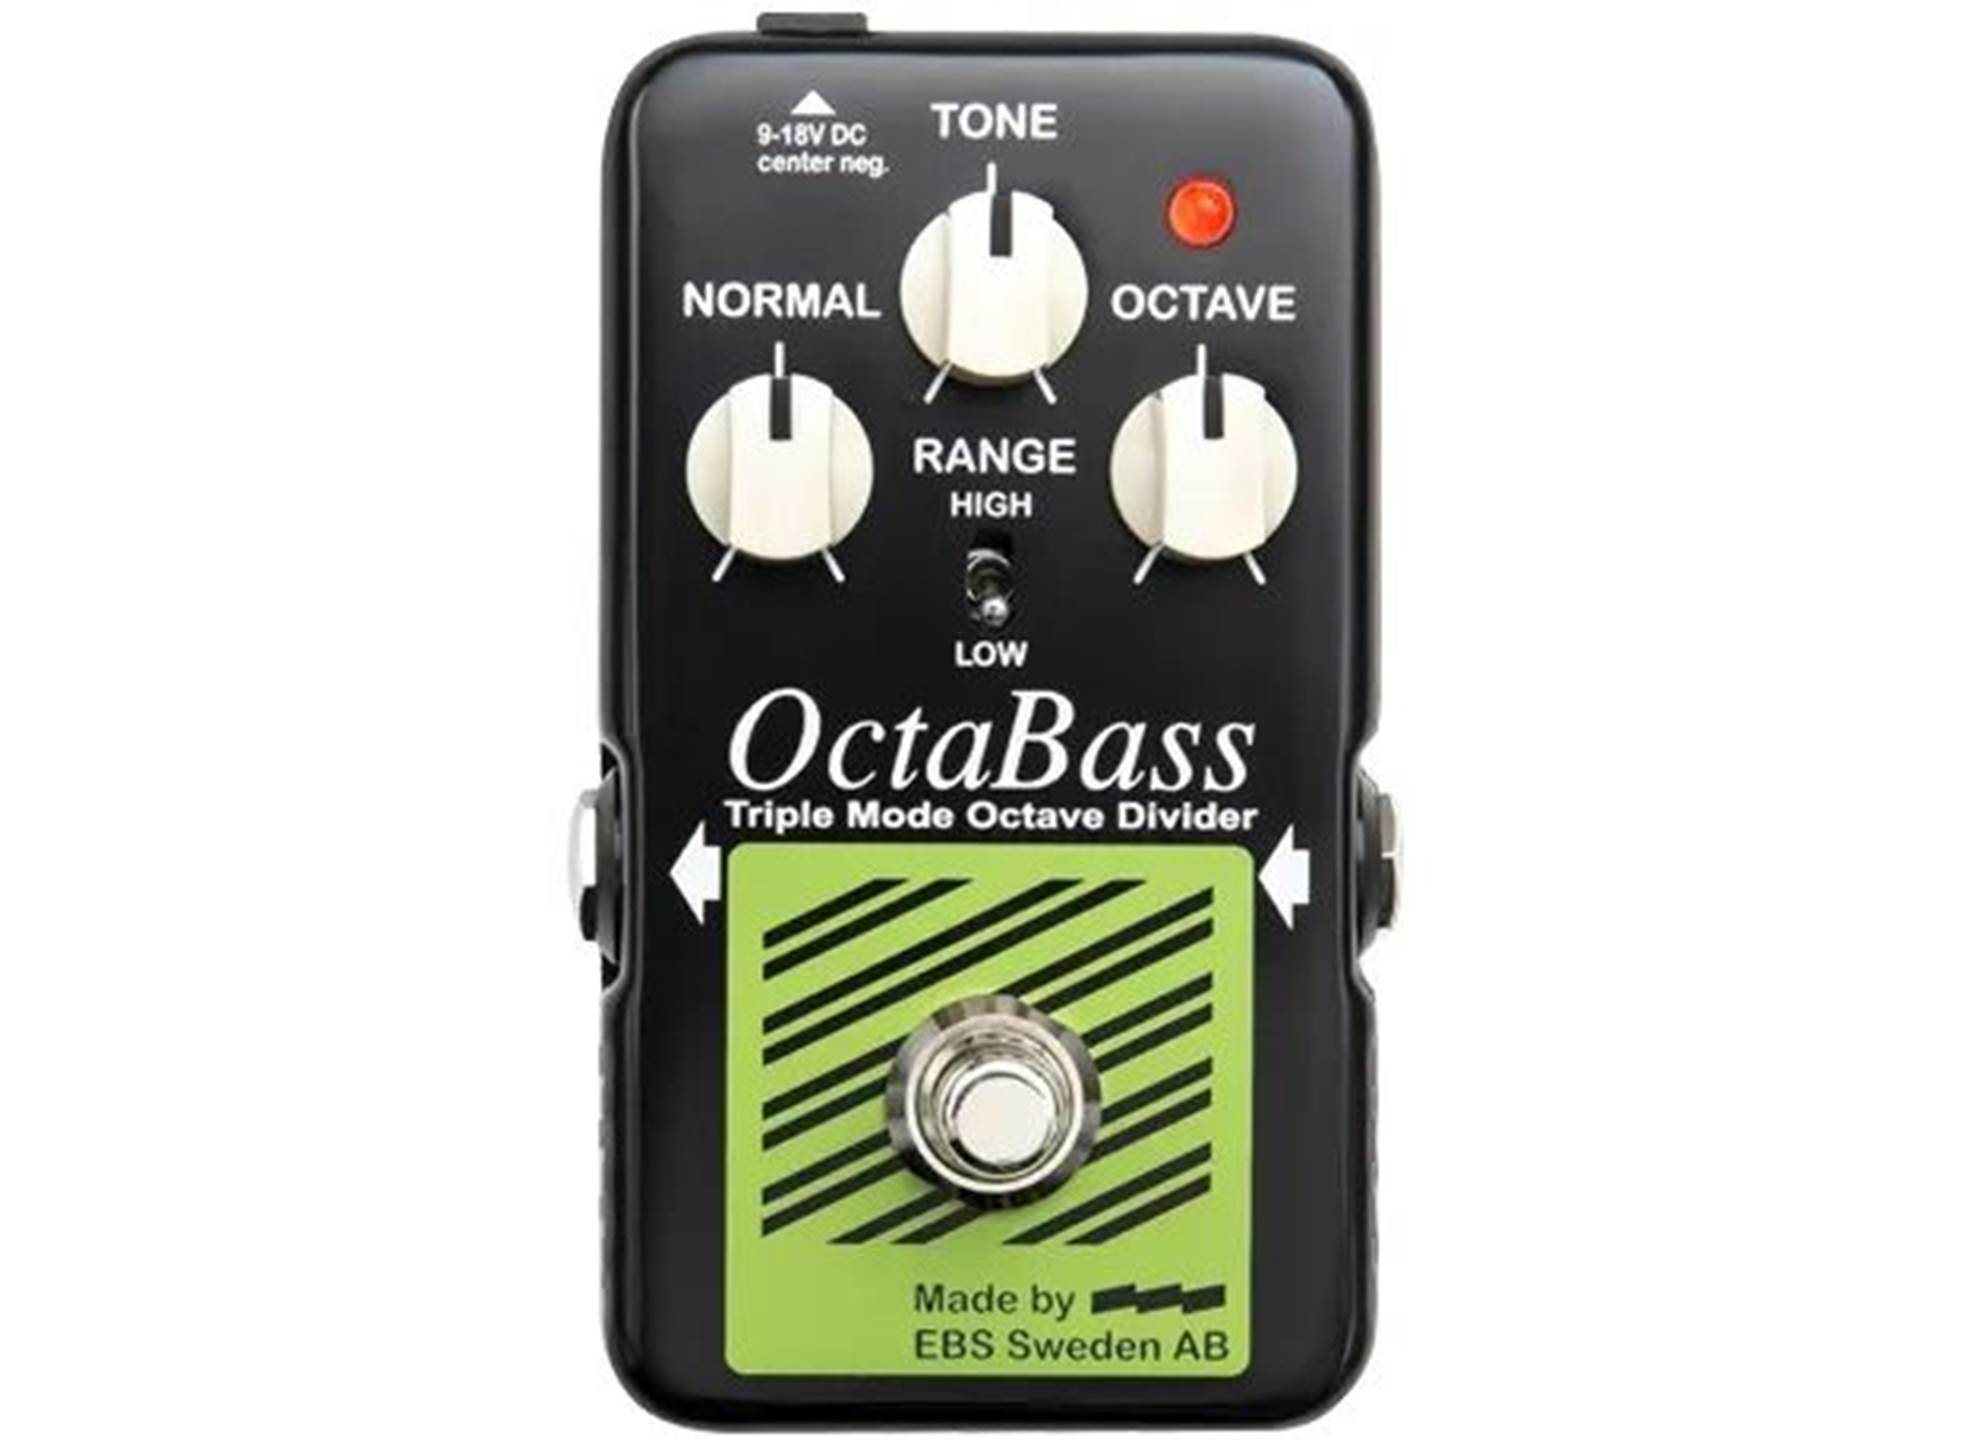 Octa Bass Blue Label